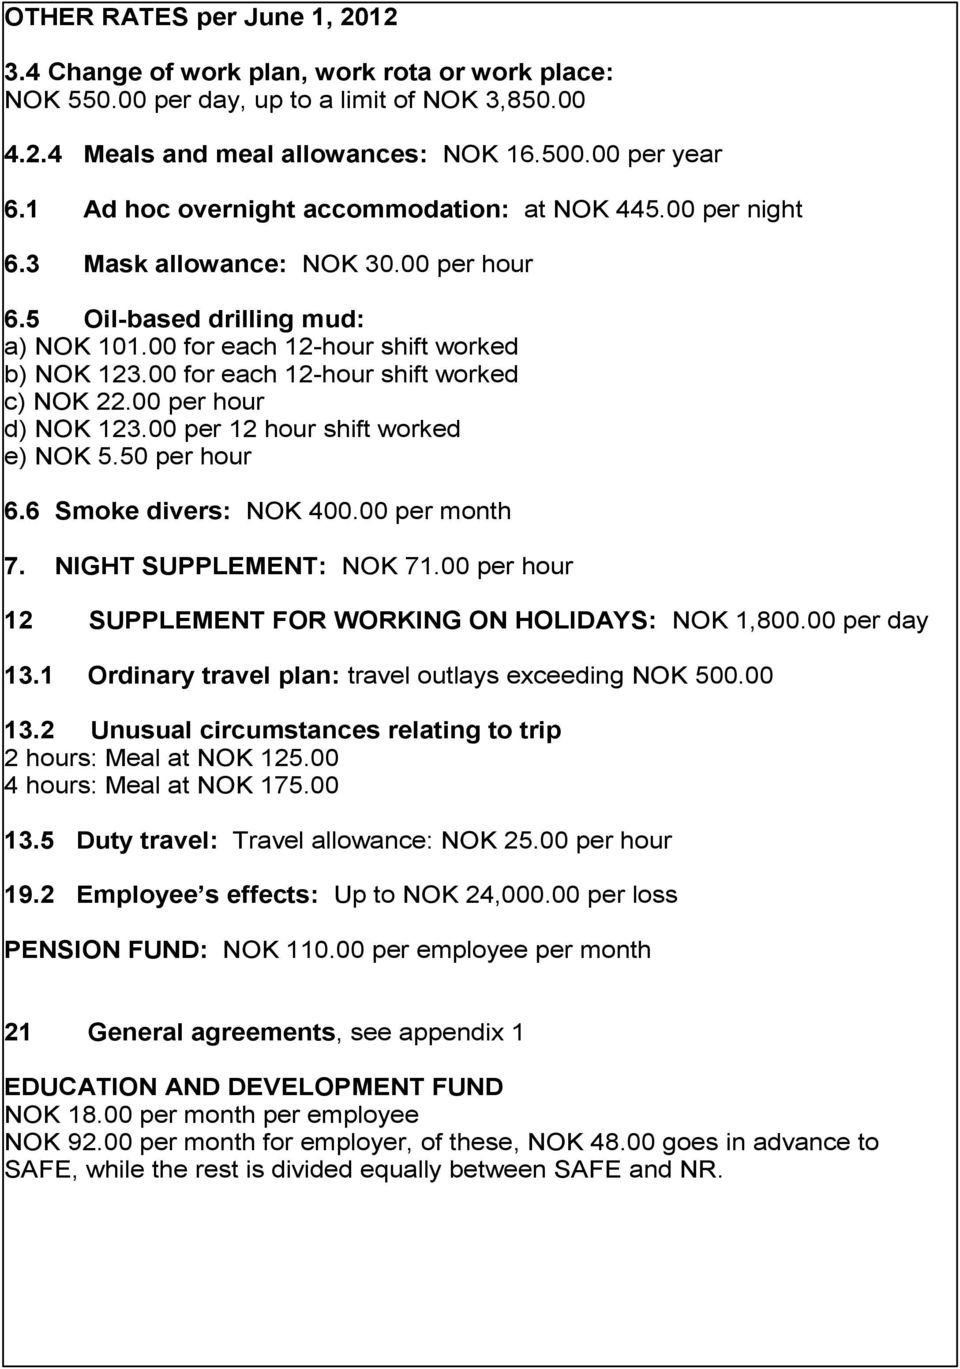 00 for each 12-hour shift worked c) NOK 22.00 per hour d) NOK 123.00 per 12 hour shift worked e) NOK 5.50 per hour 6.6 Smoke divers: NOK 400.00 per month 7. NIGHT SUPPLEMENT: NOK 71.